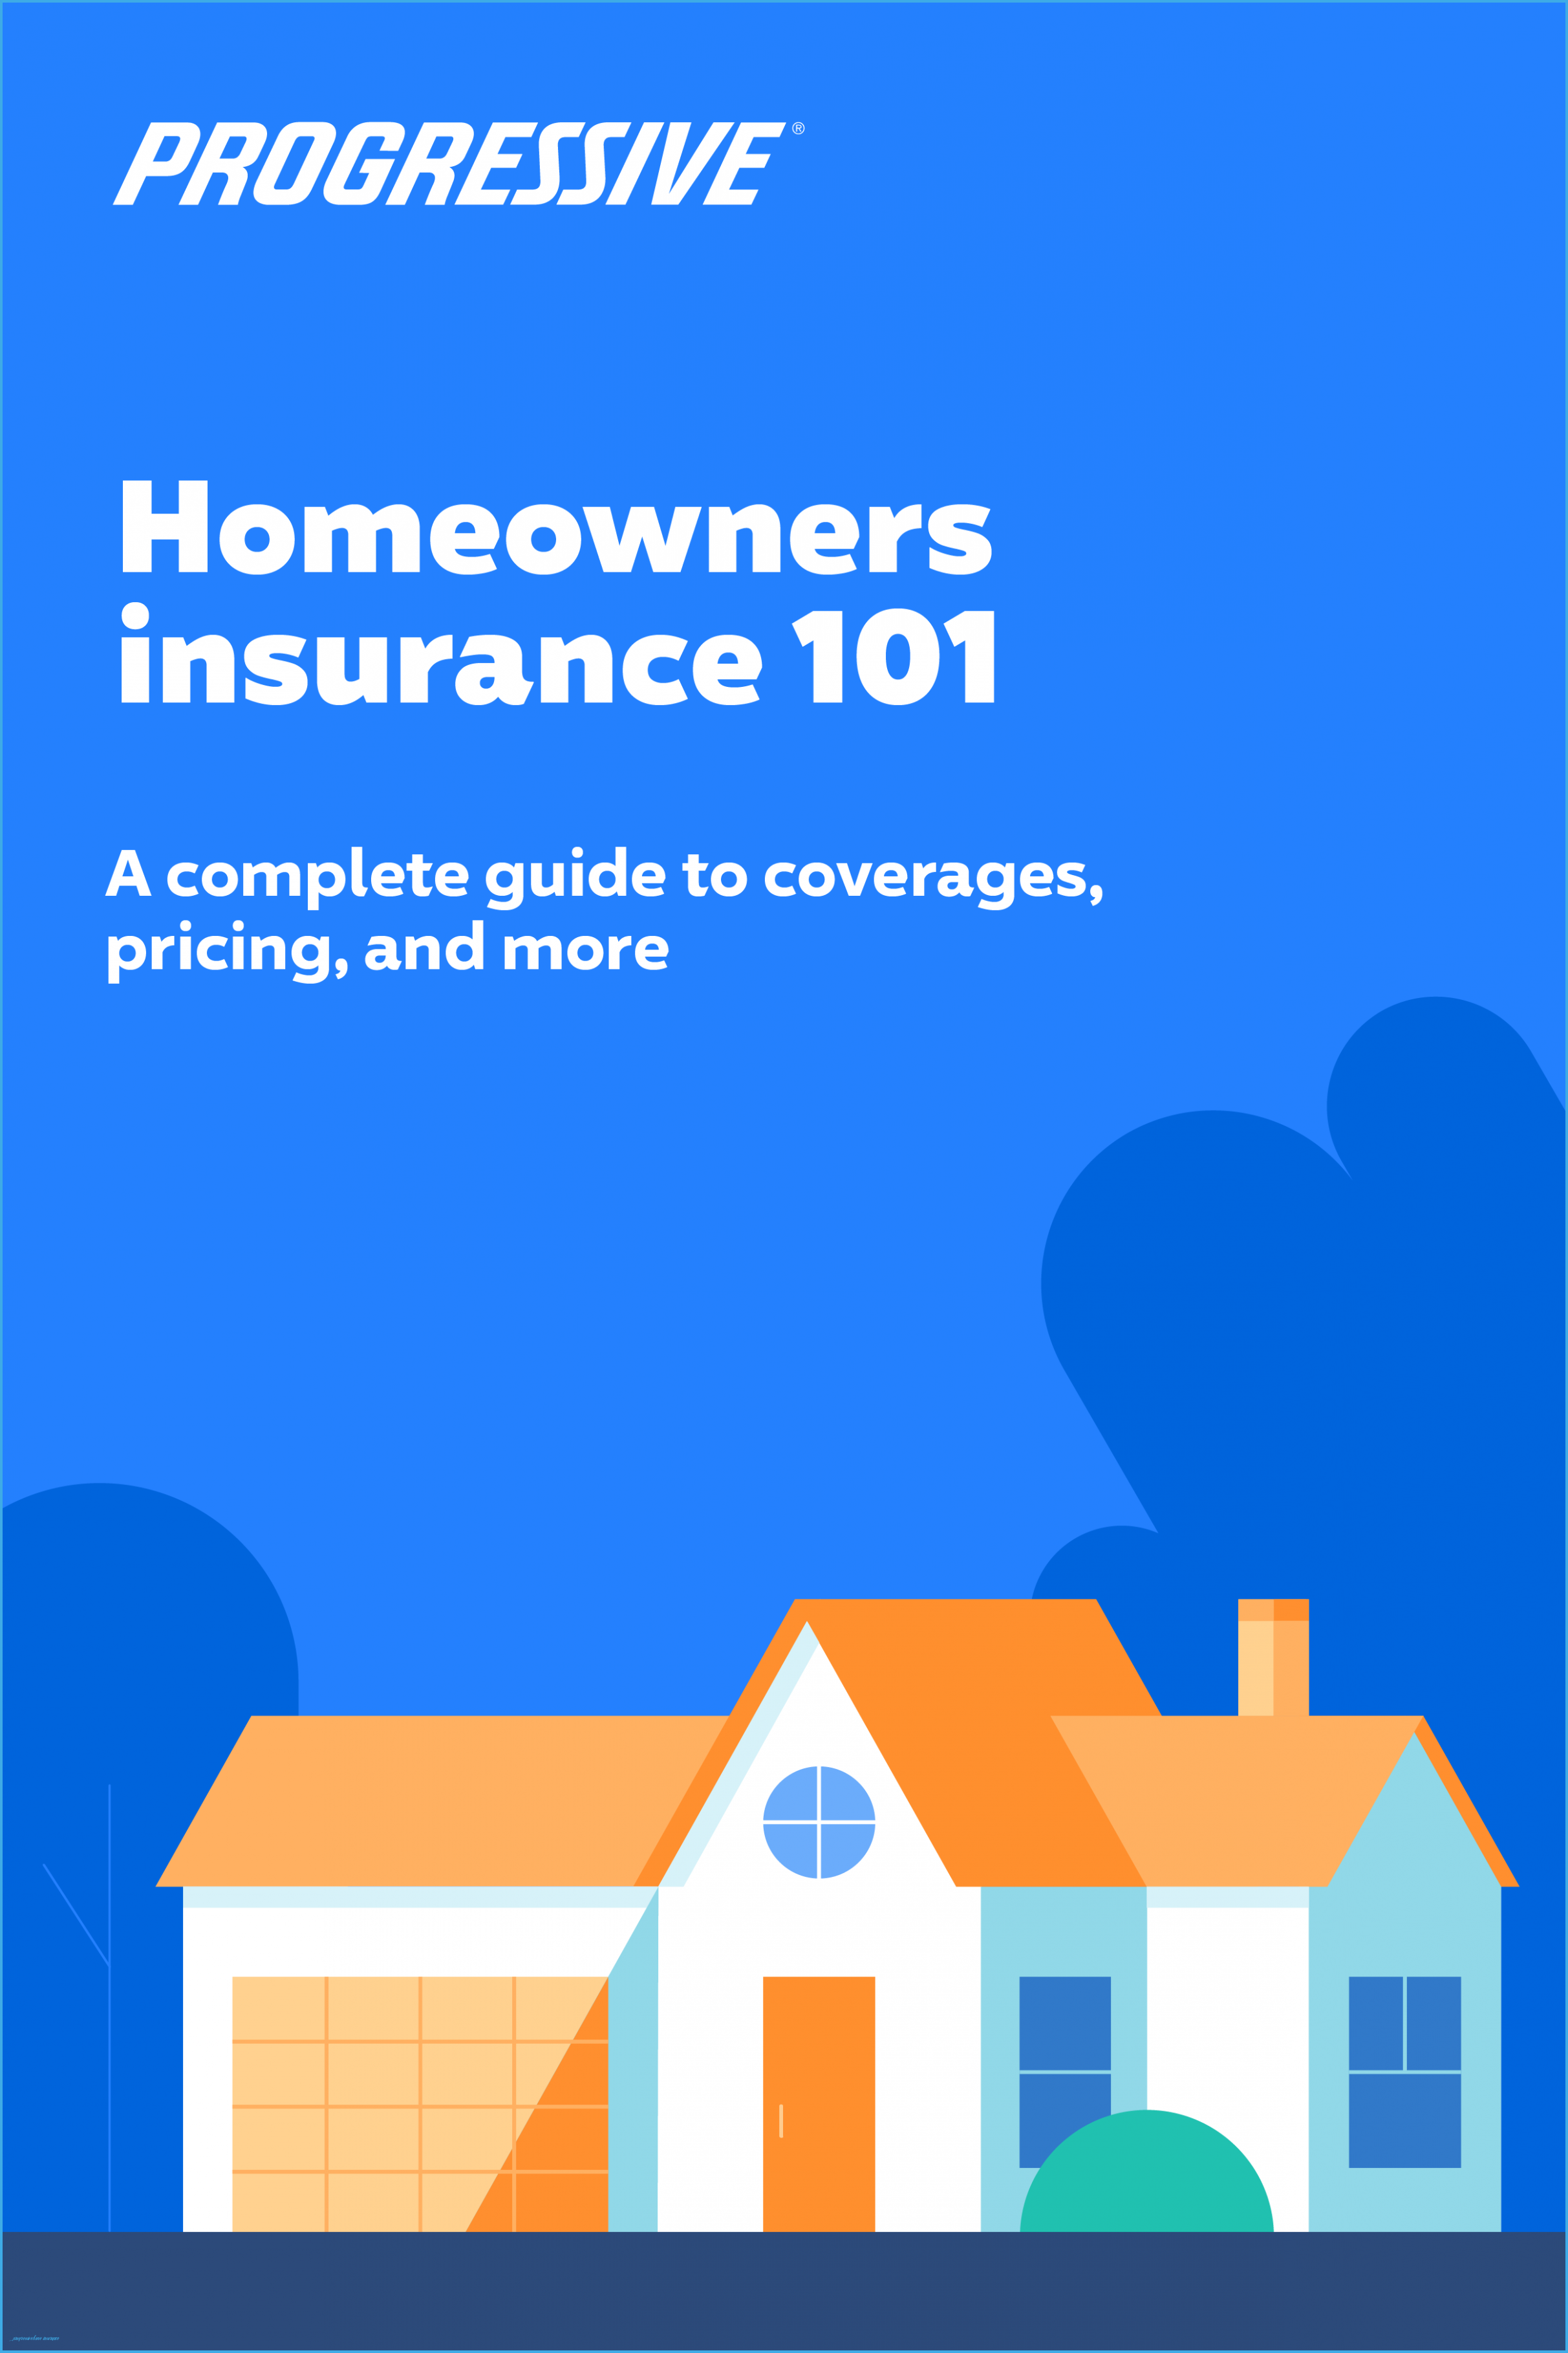 Why You Should Not Go To Progressive Home Insurance